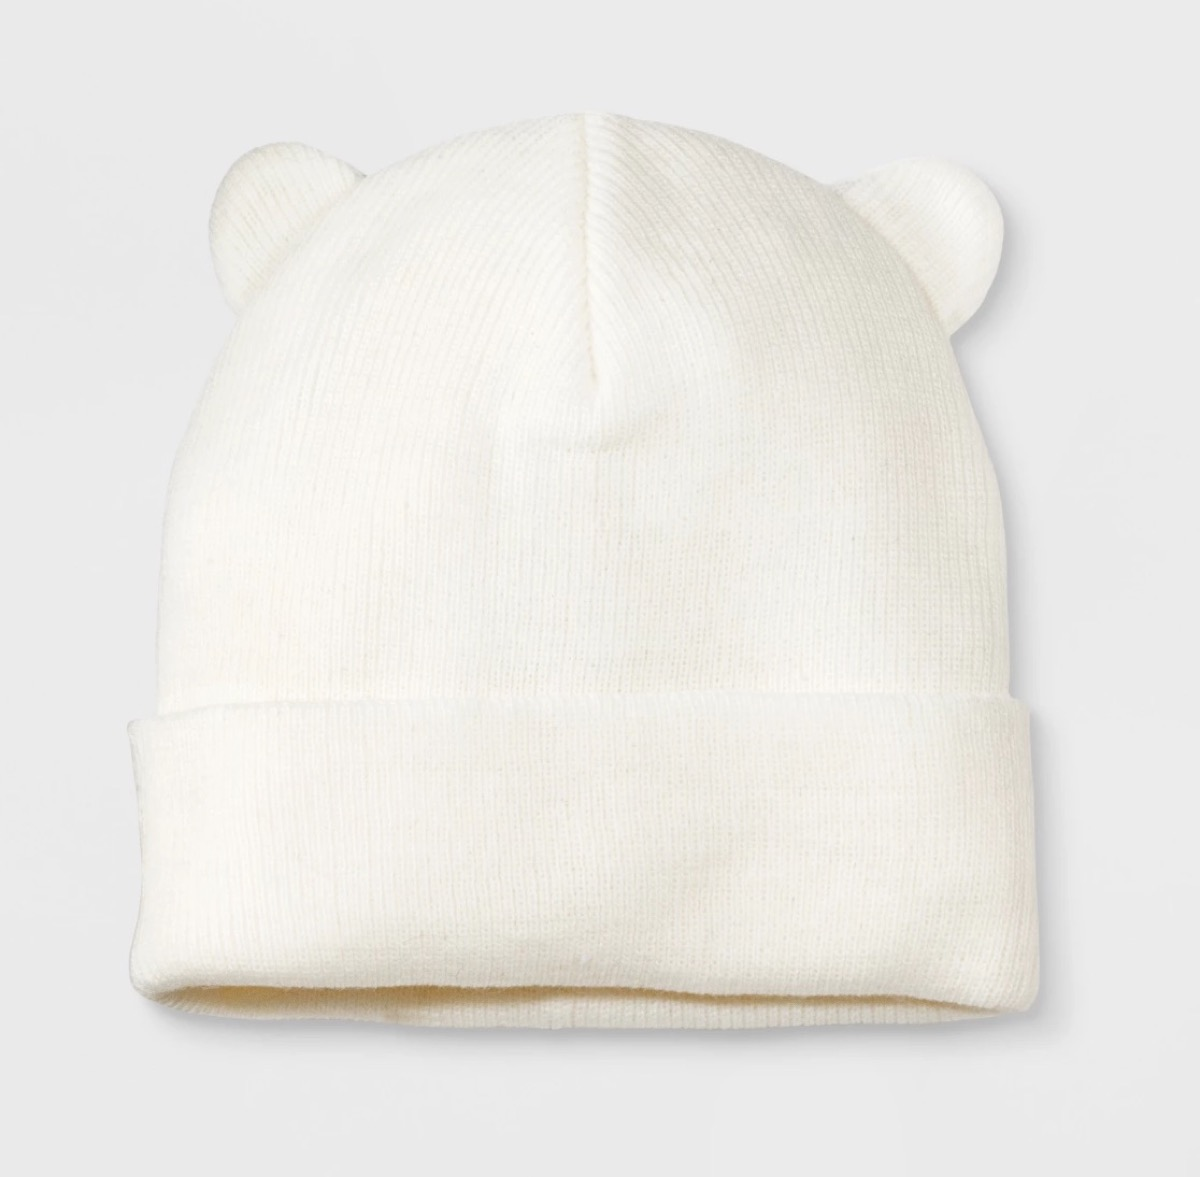 Target Kids' Hat With Cute Ears {Save Money on Kids' Clothes}